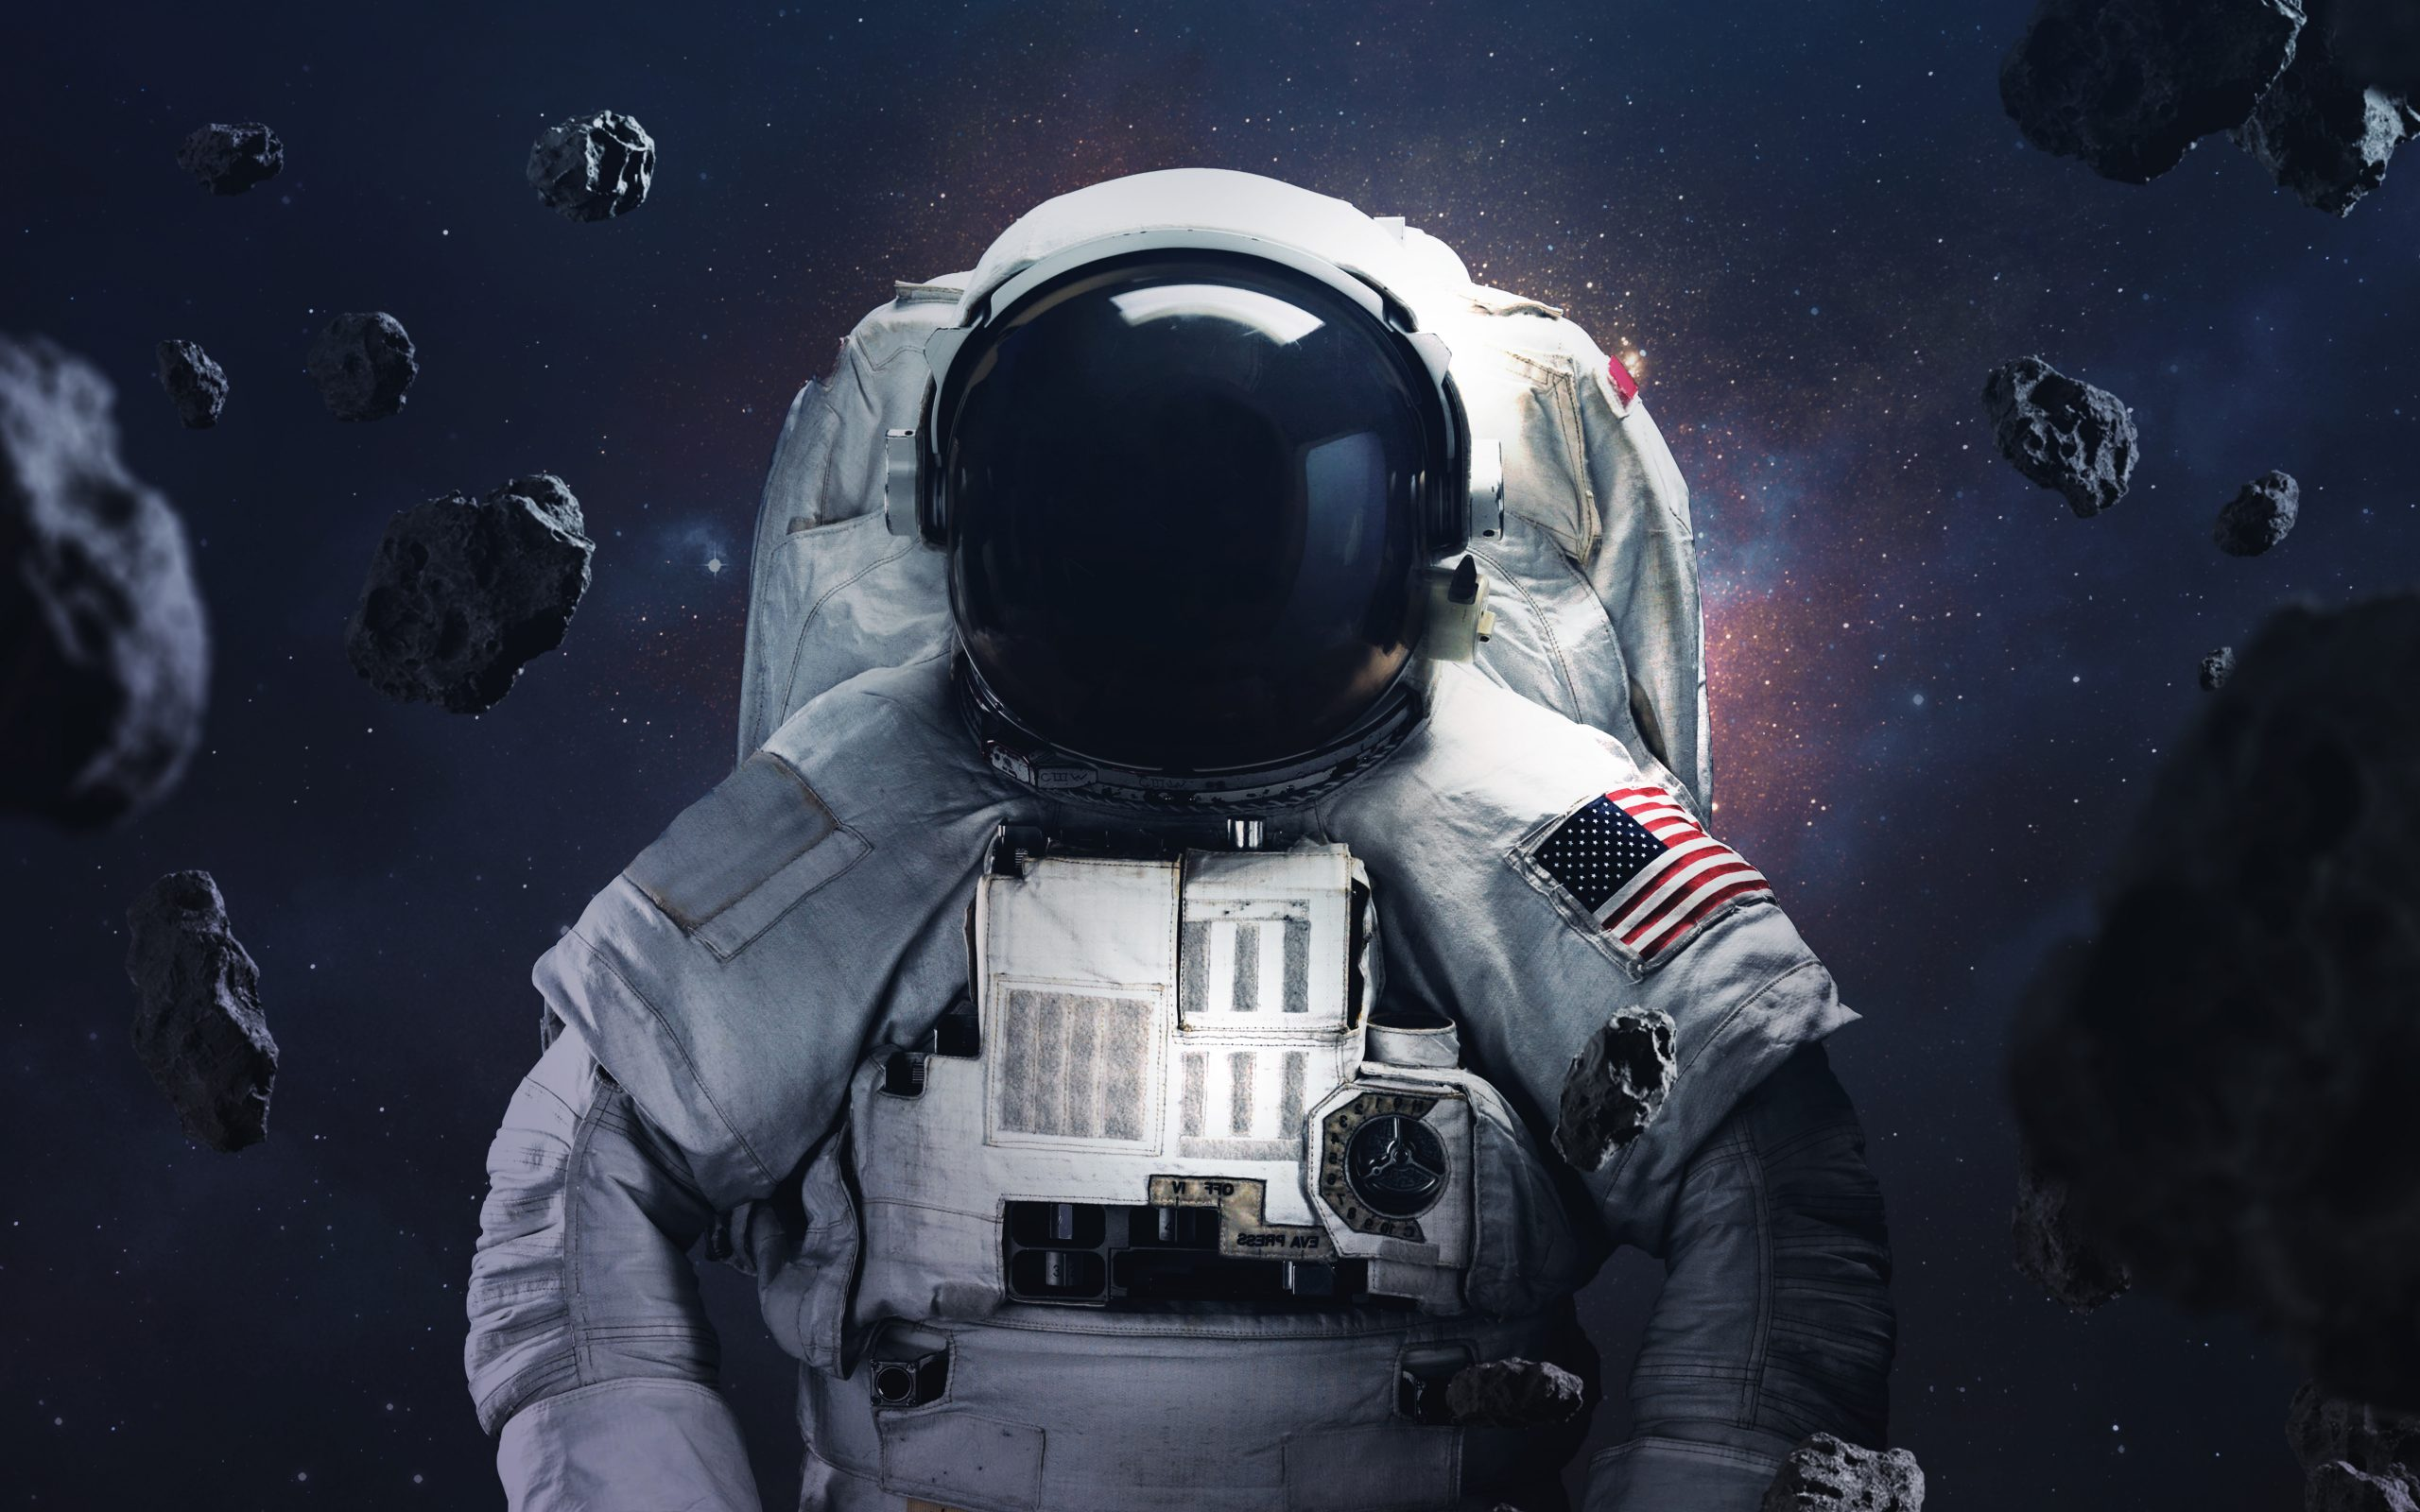 Picture of astronaut spacewalking at the awesome cosmic backgrouds with glowing stars and asteroids. Deep space image, science fiction fantasy in high resolution ideal for wallpaper and print. Elements of this image furnished by NASA